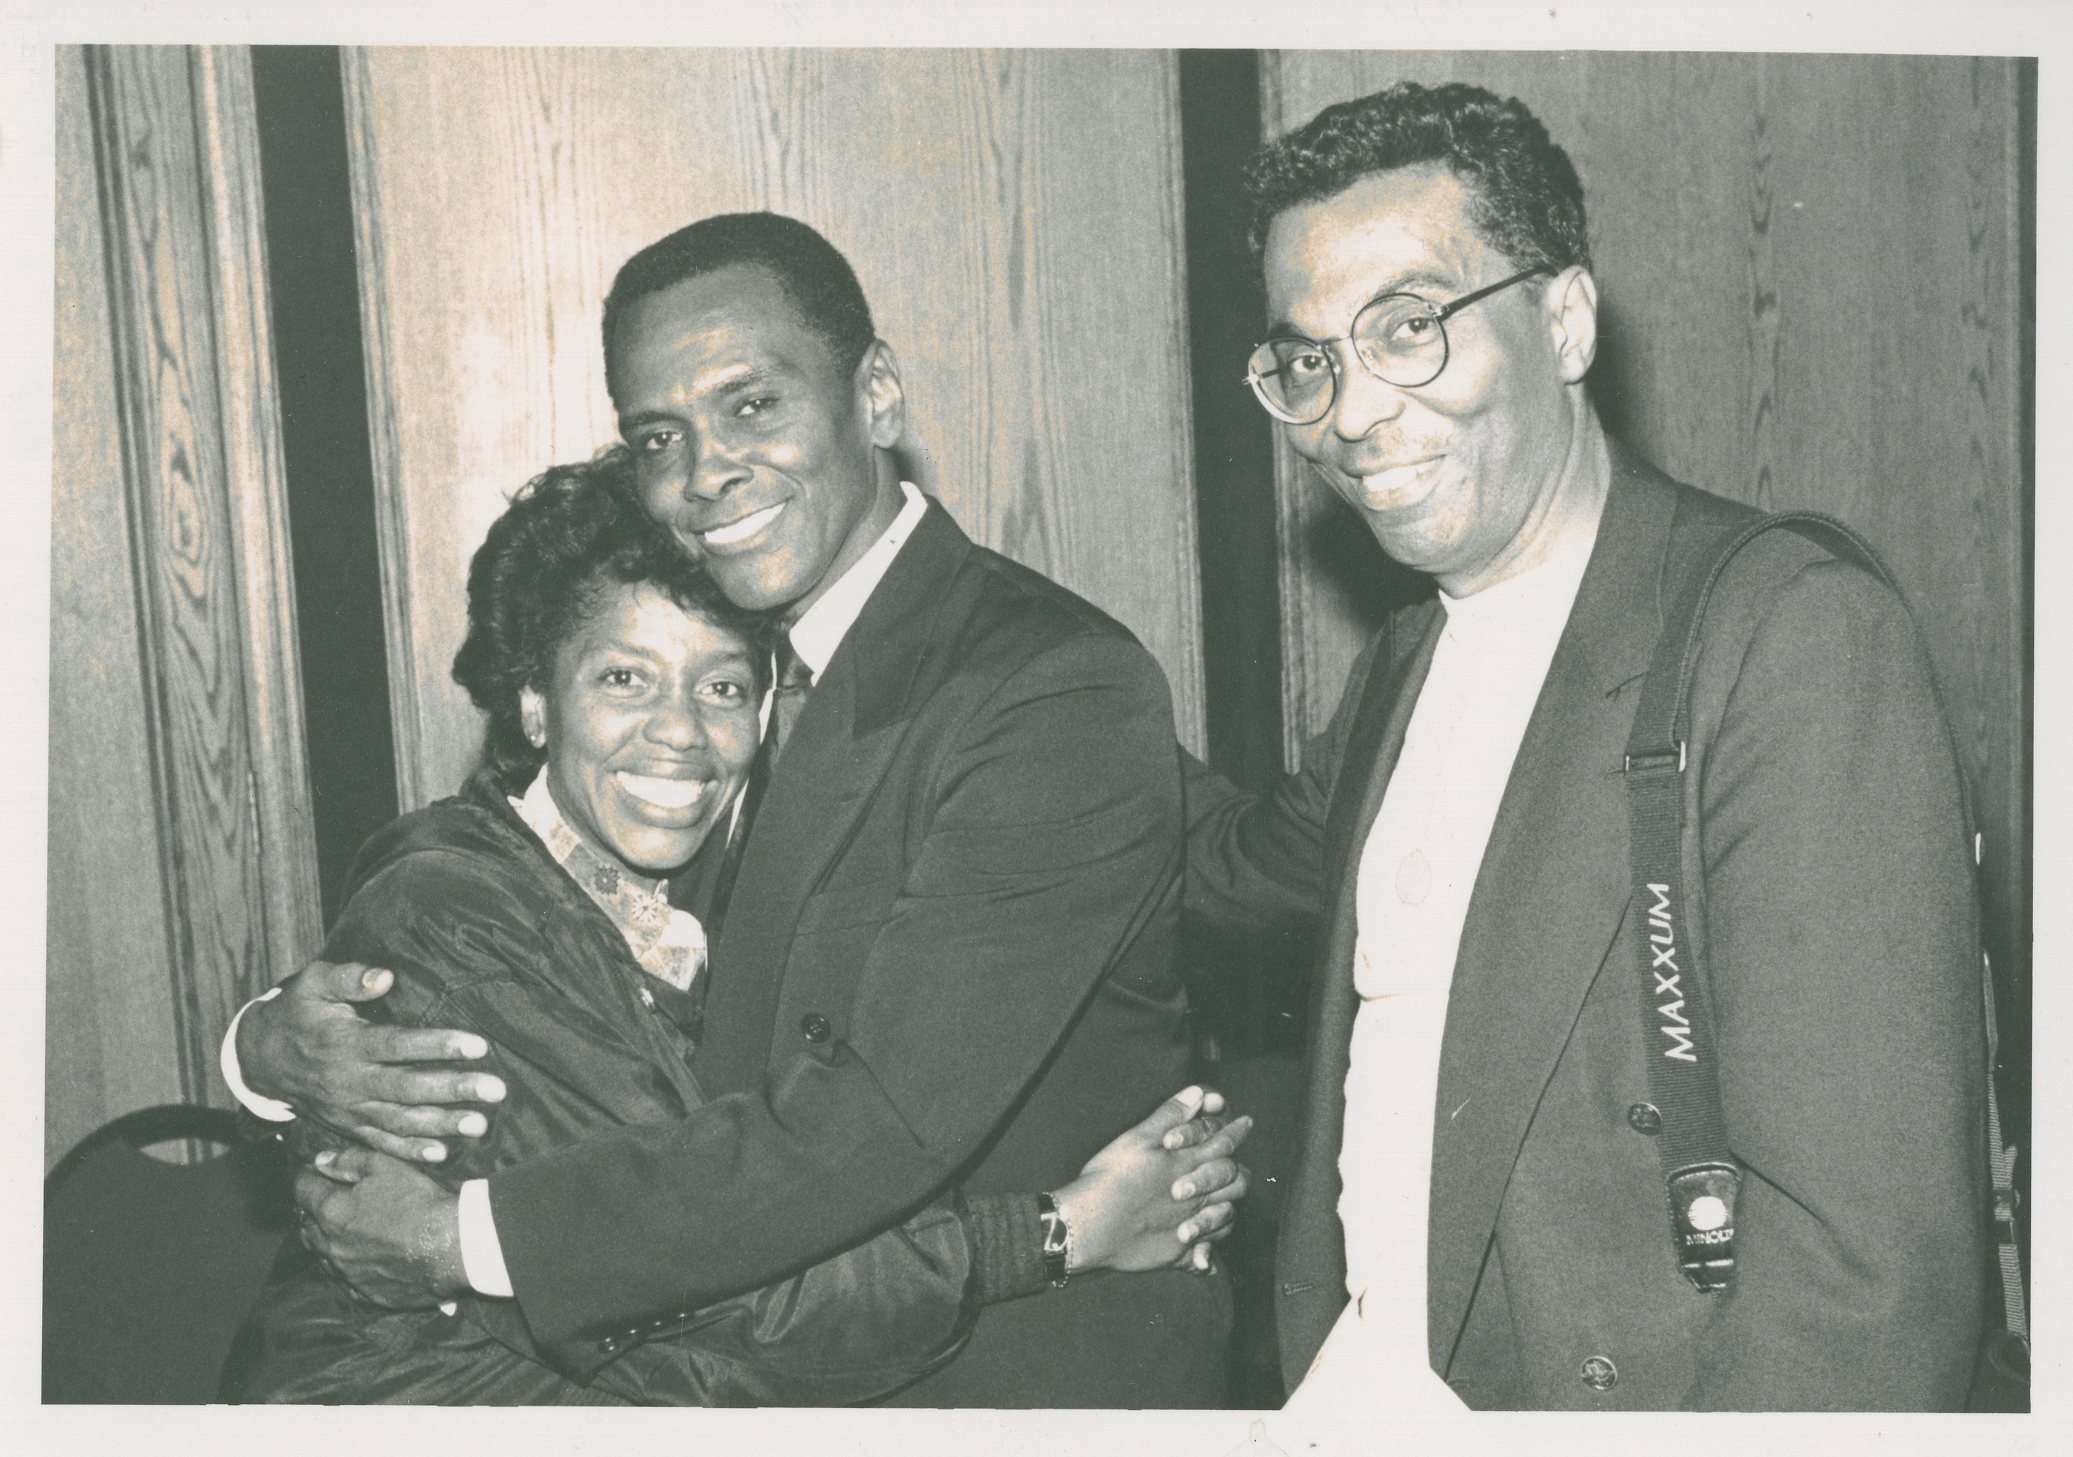 Arthur Mitchell with Tania Leon and Walter Raines